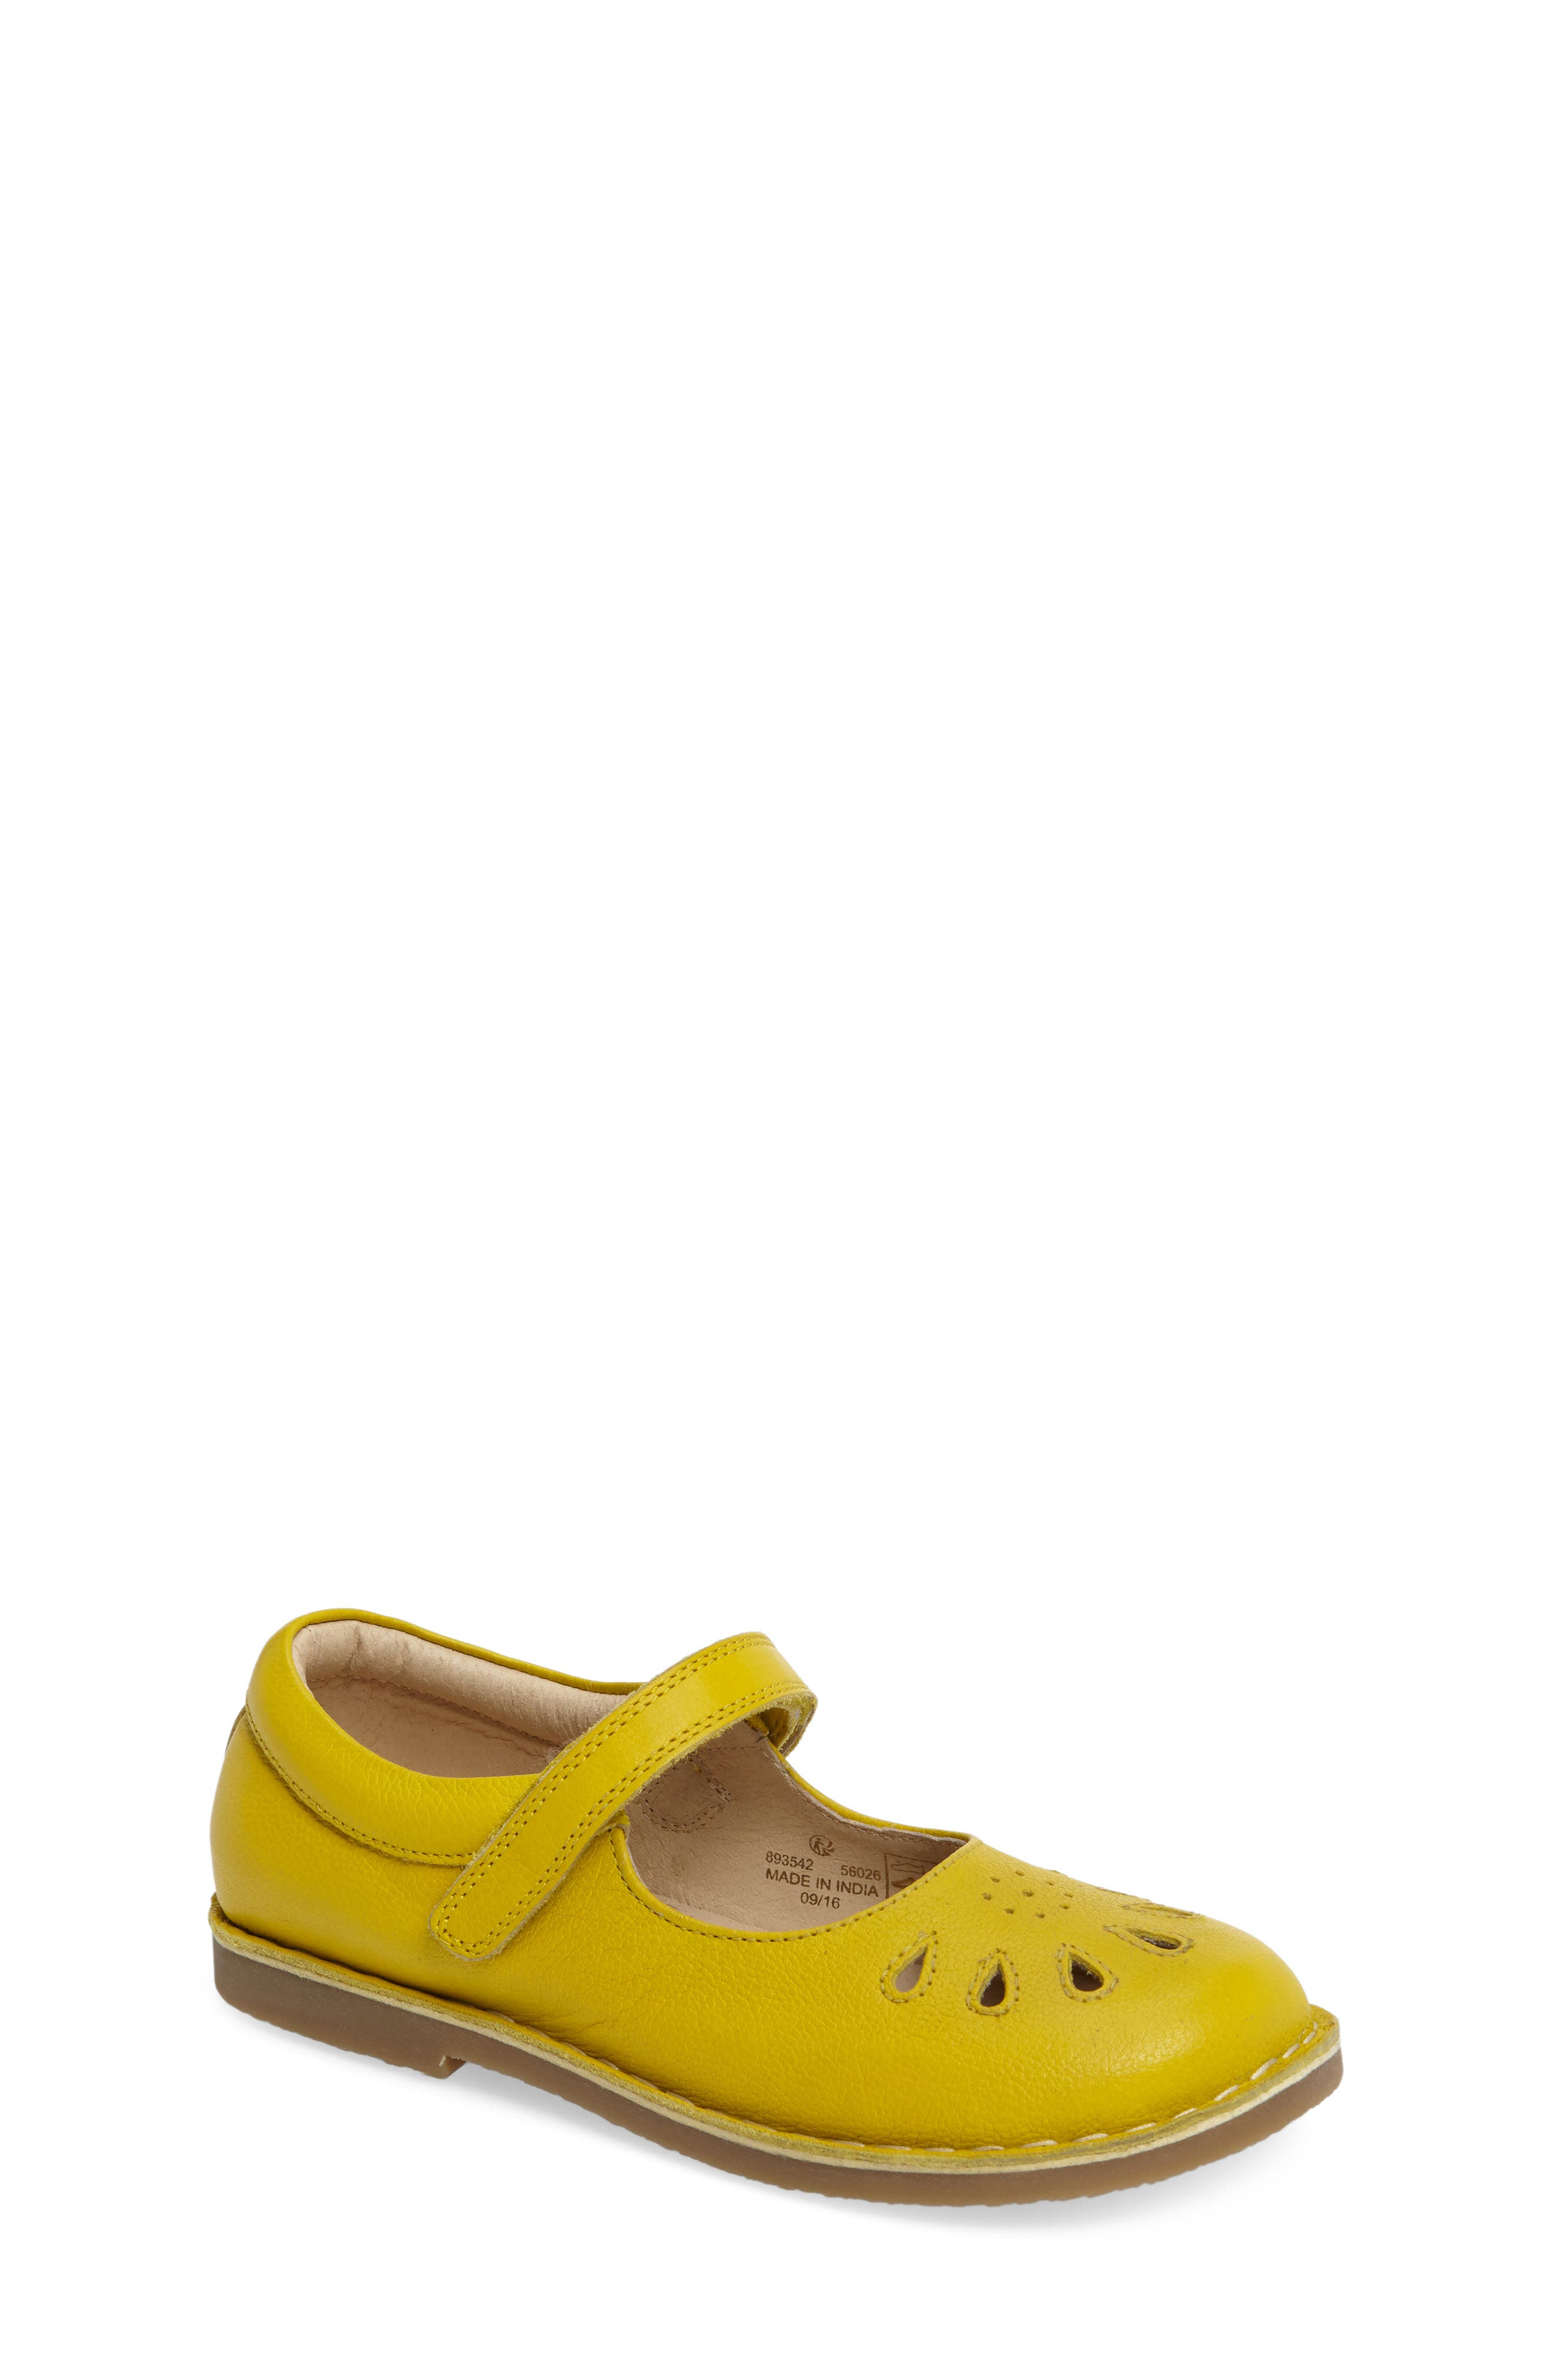 Mini Boden Mary Jane Shoe (Toddler, Little Kid & Big Kid)